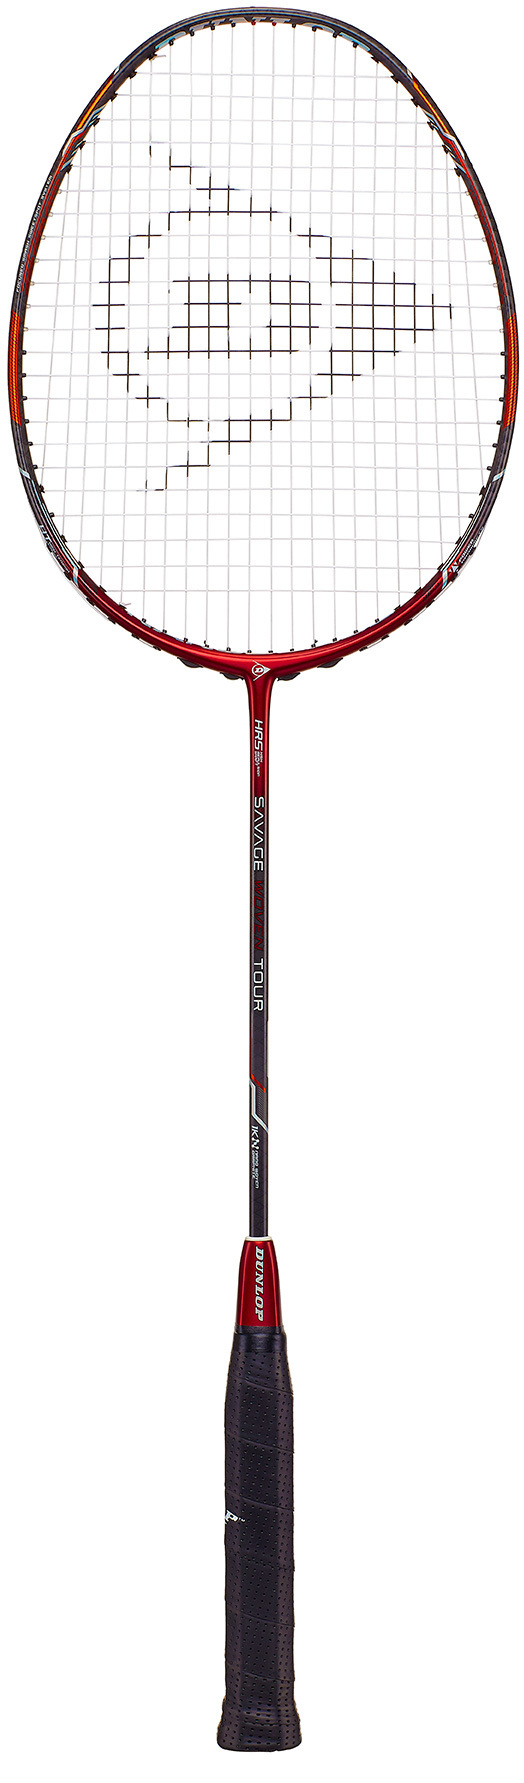 Dunlop Nanoblade Savage Woven Tour badmintonracket